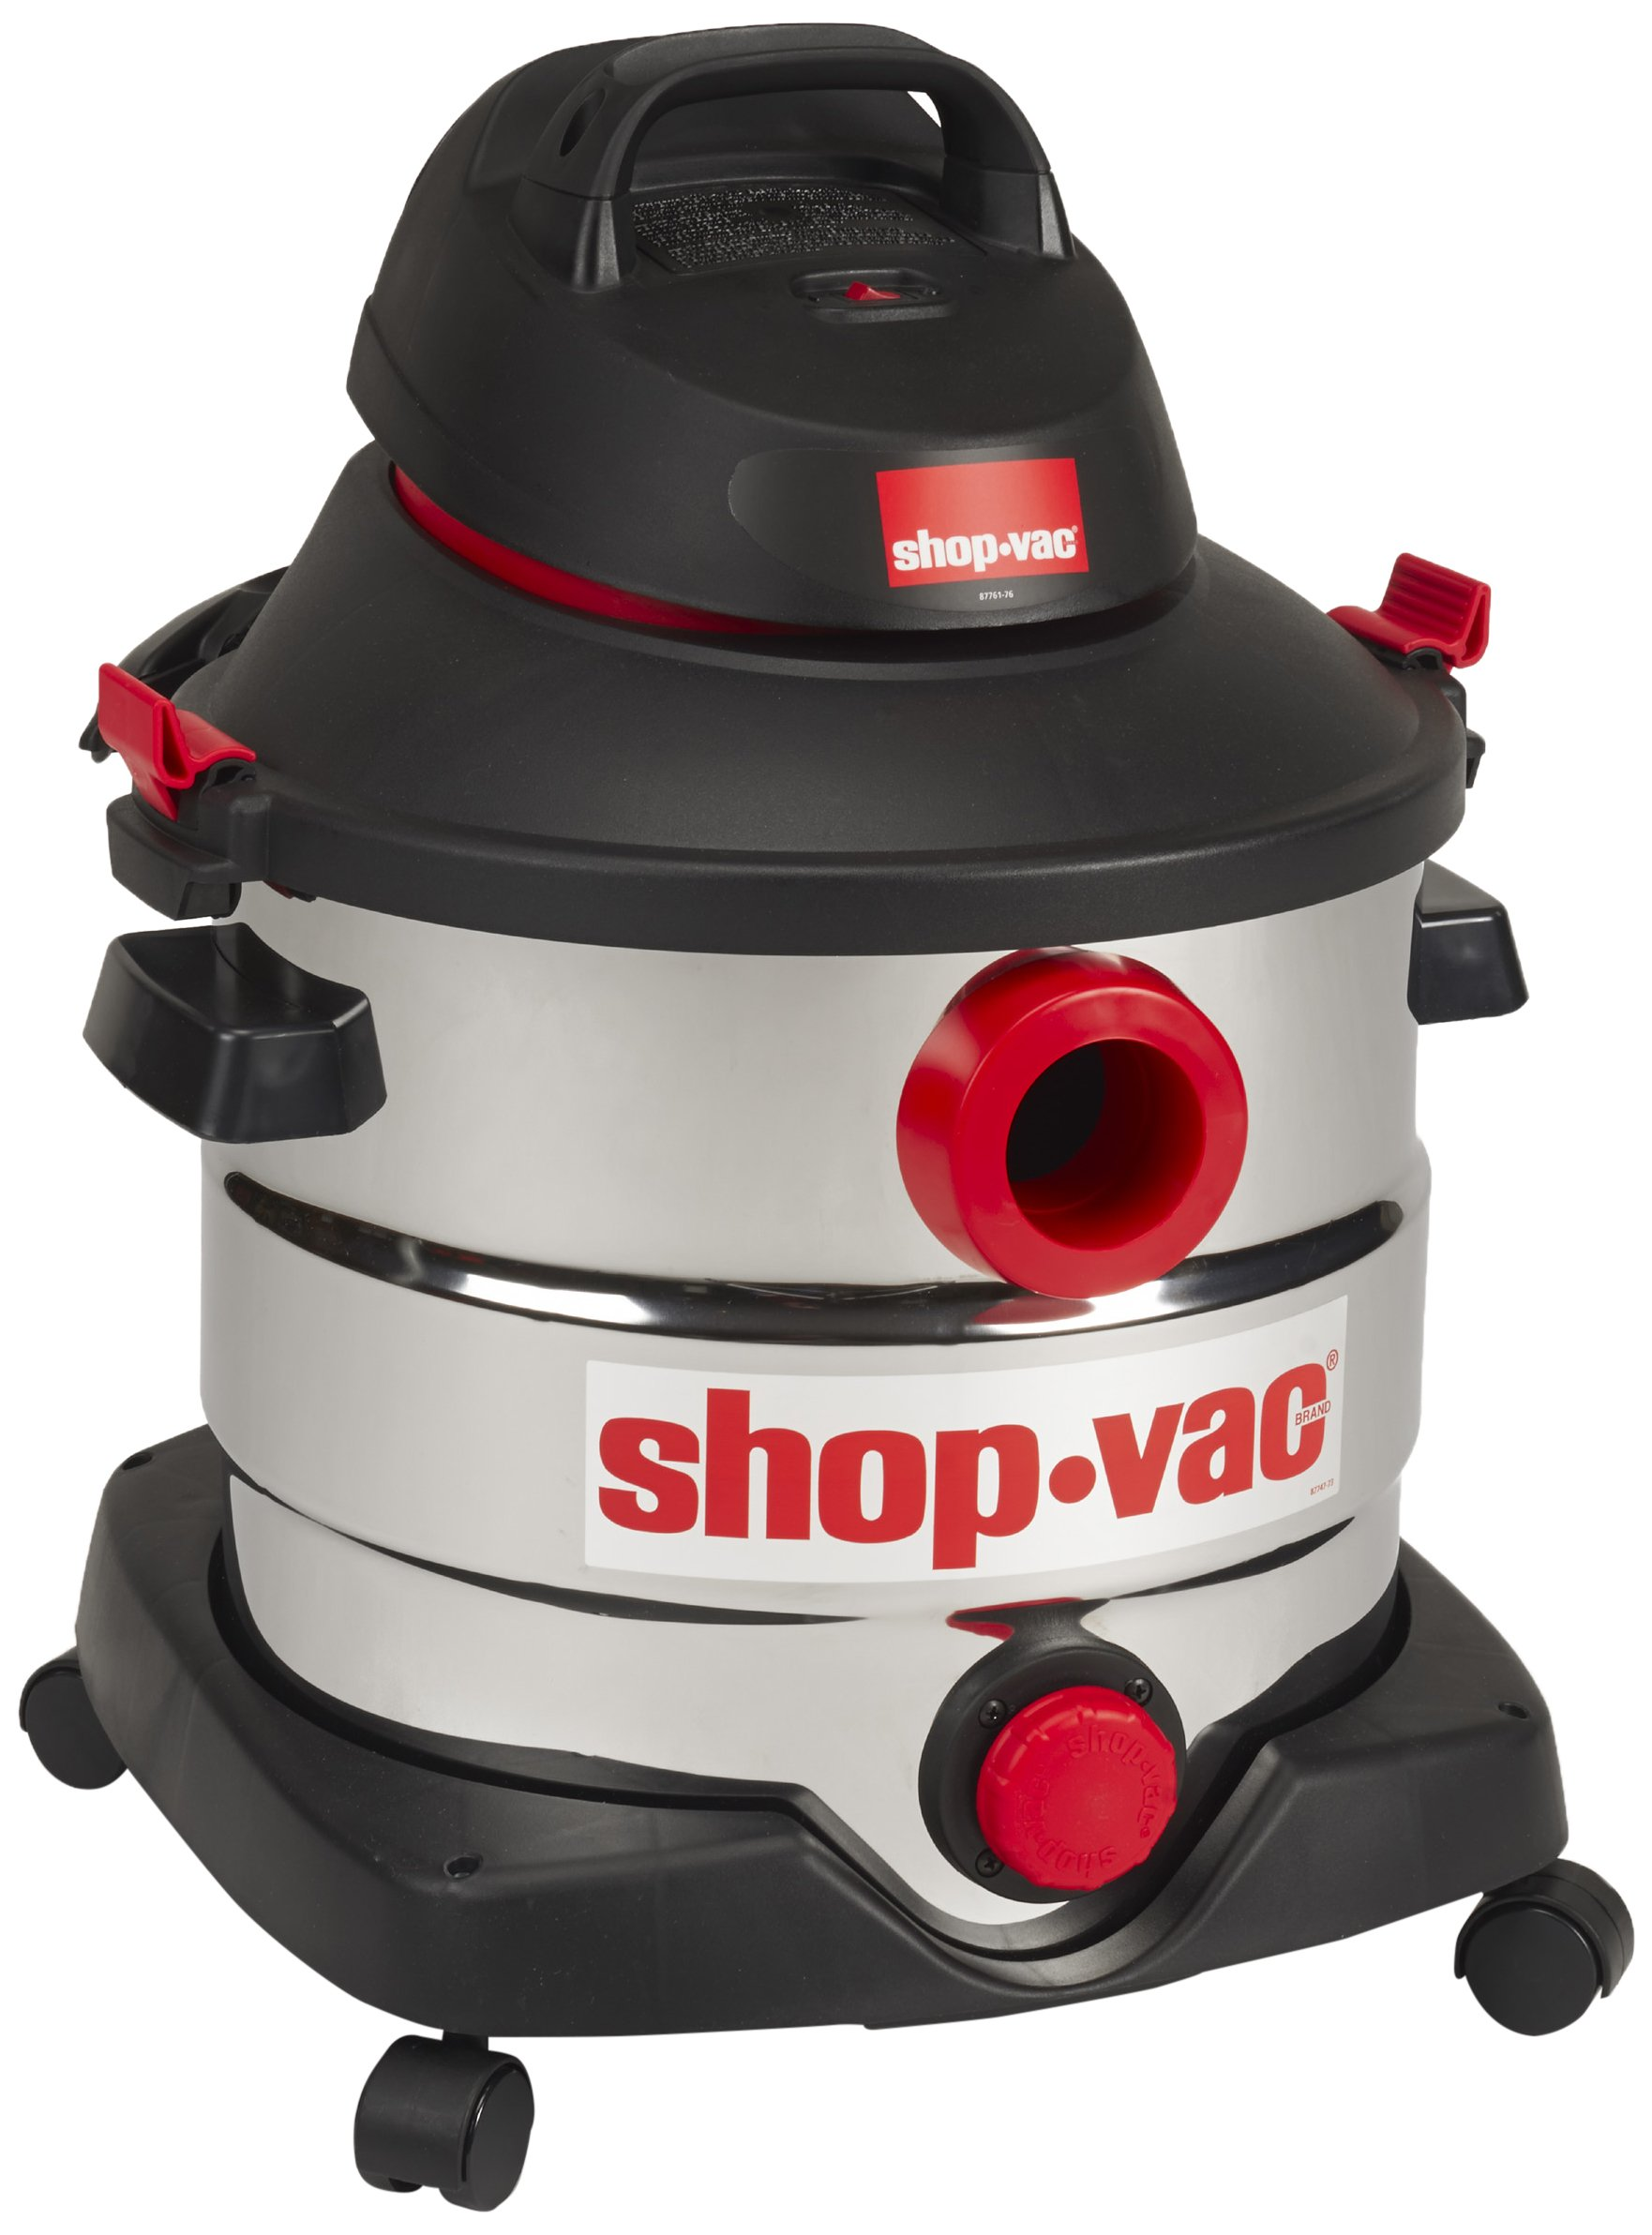 Shop-Vac 5989400 8 gallon 6.0 Peak HP Stainless Wet Dry Vacuum, Black by Shop-Vac